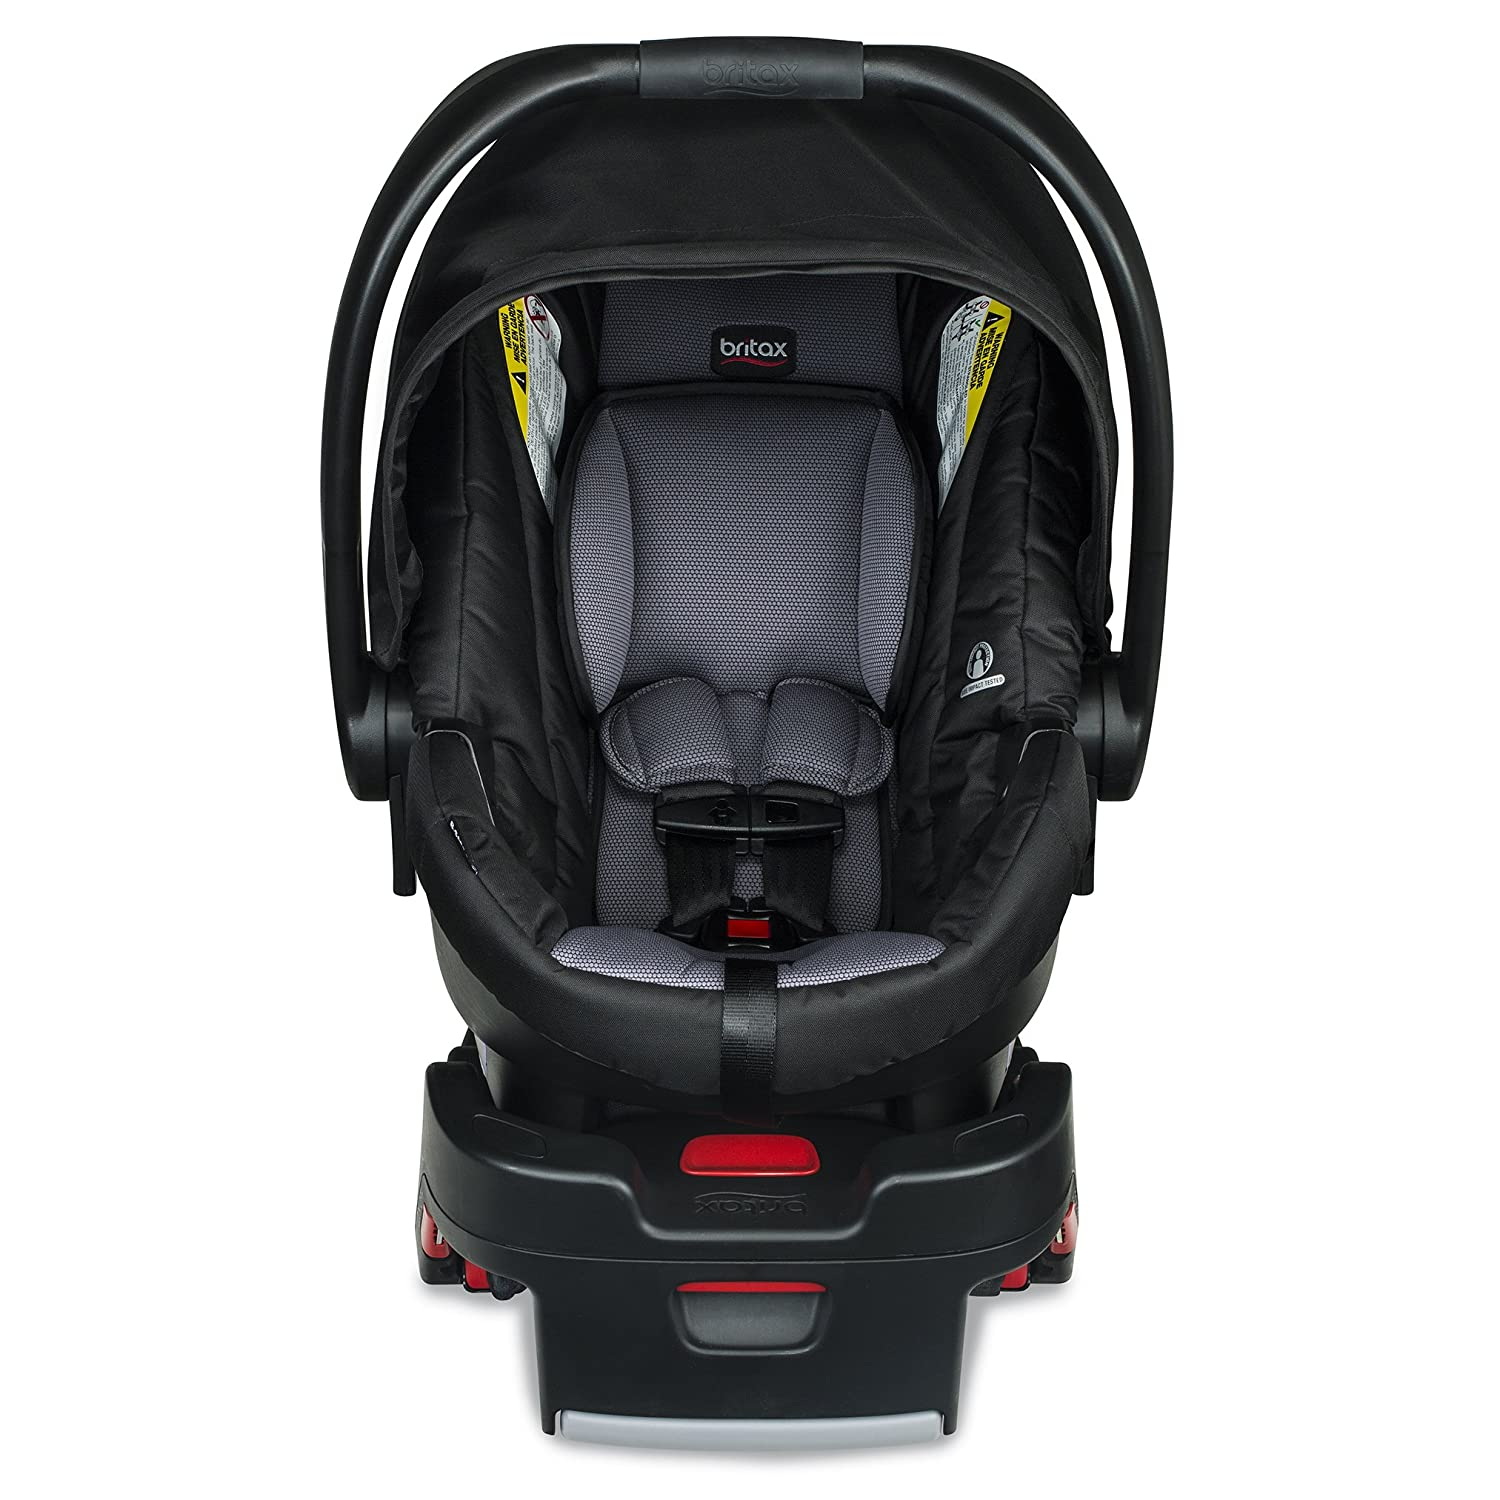 Grey 1 Layer Impact Protection Dual Comfort Moisture Wicking and Ventilating Fabric 4 to 35 Pounds Rear Facing Britax B-Safe 35 Infant Car Seat